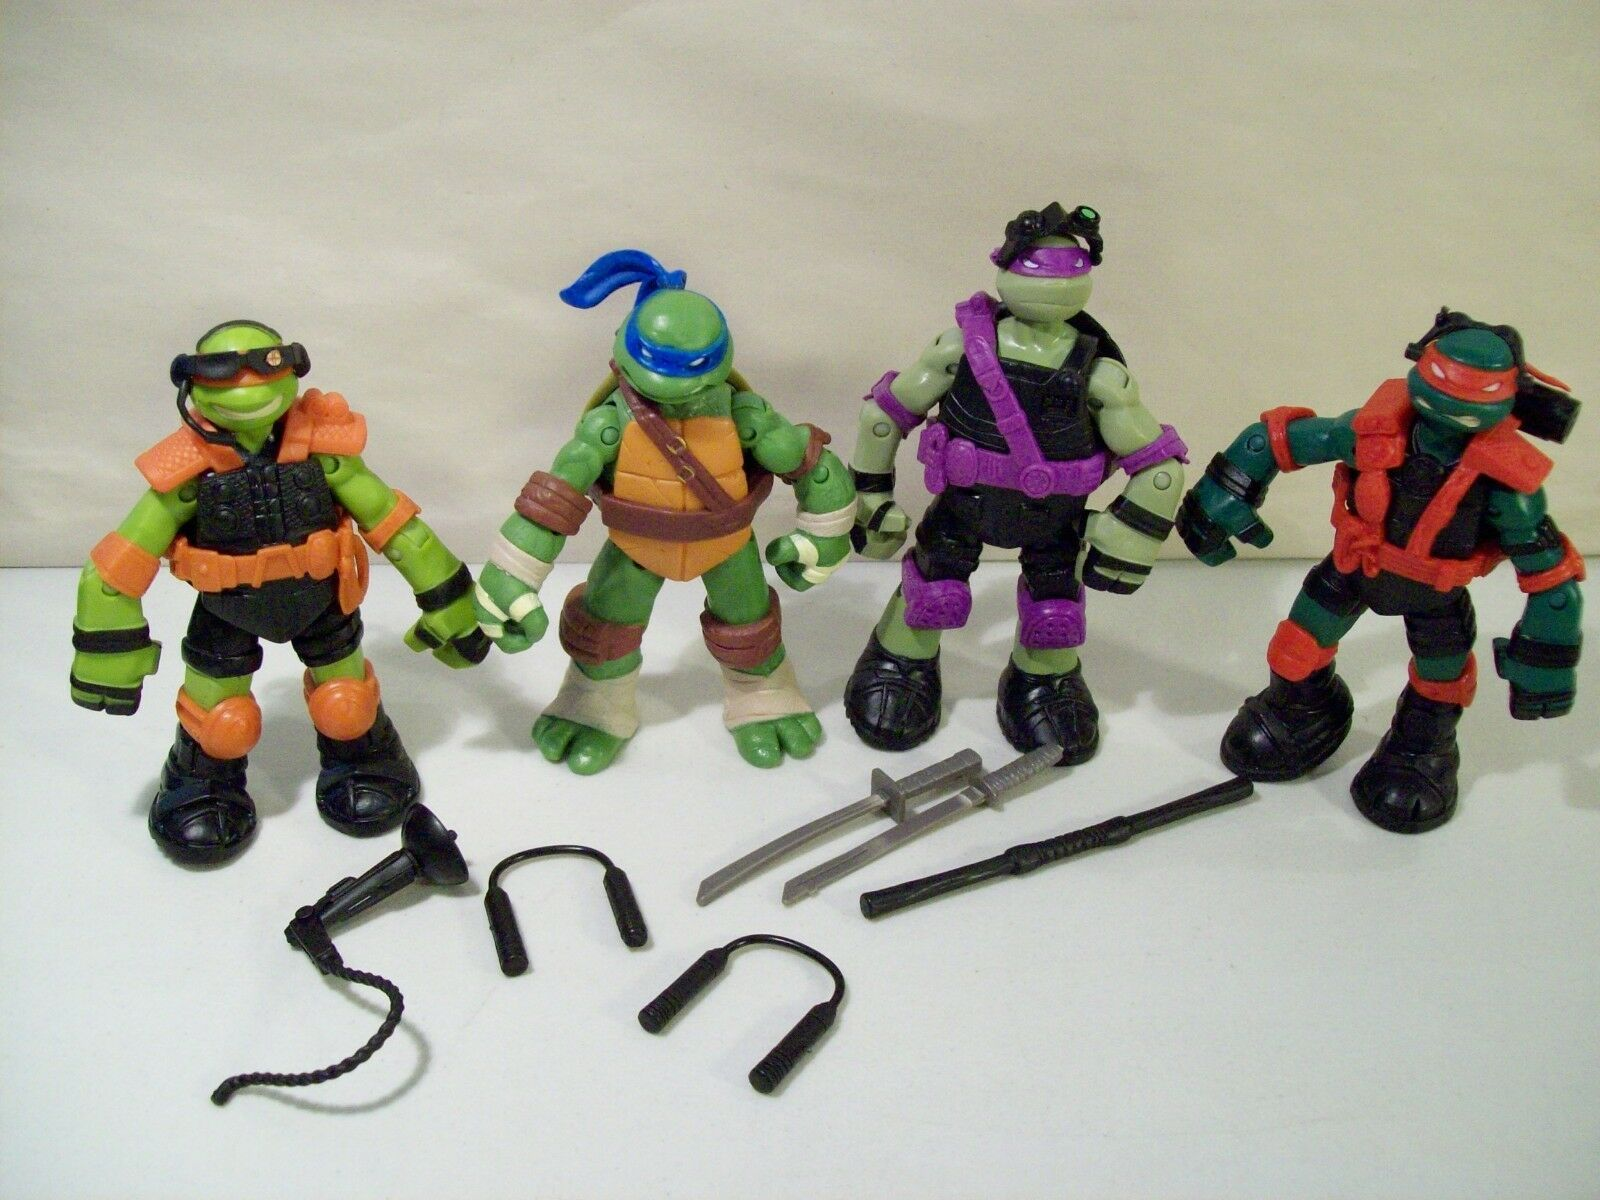 TMNT Teenage Mutant Ninja Turtles 2013 Series 5 Stealth Tech 4 Turtle Figures